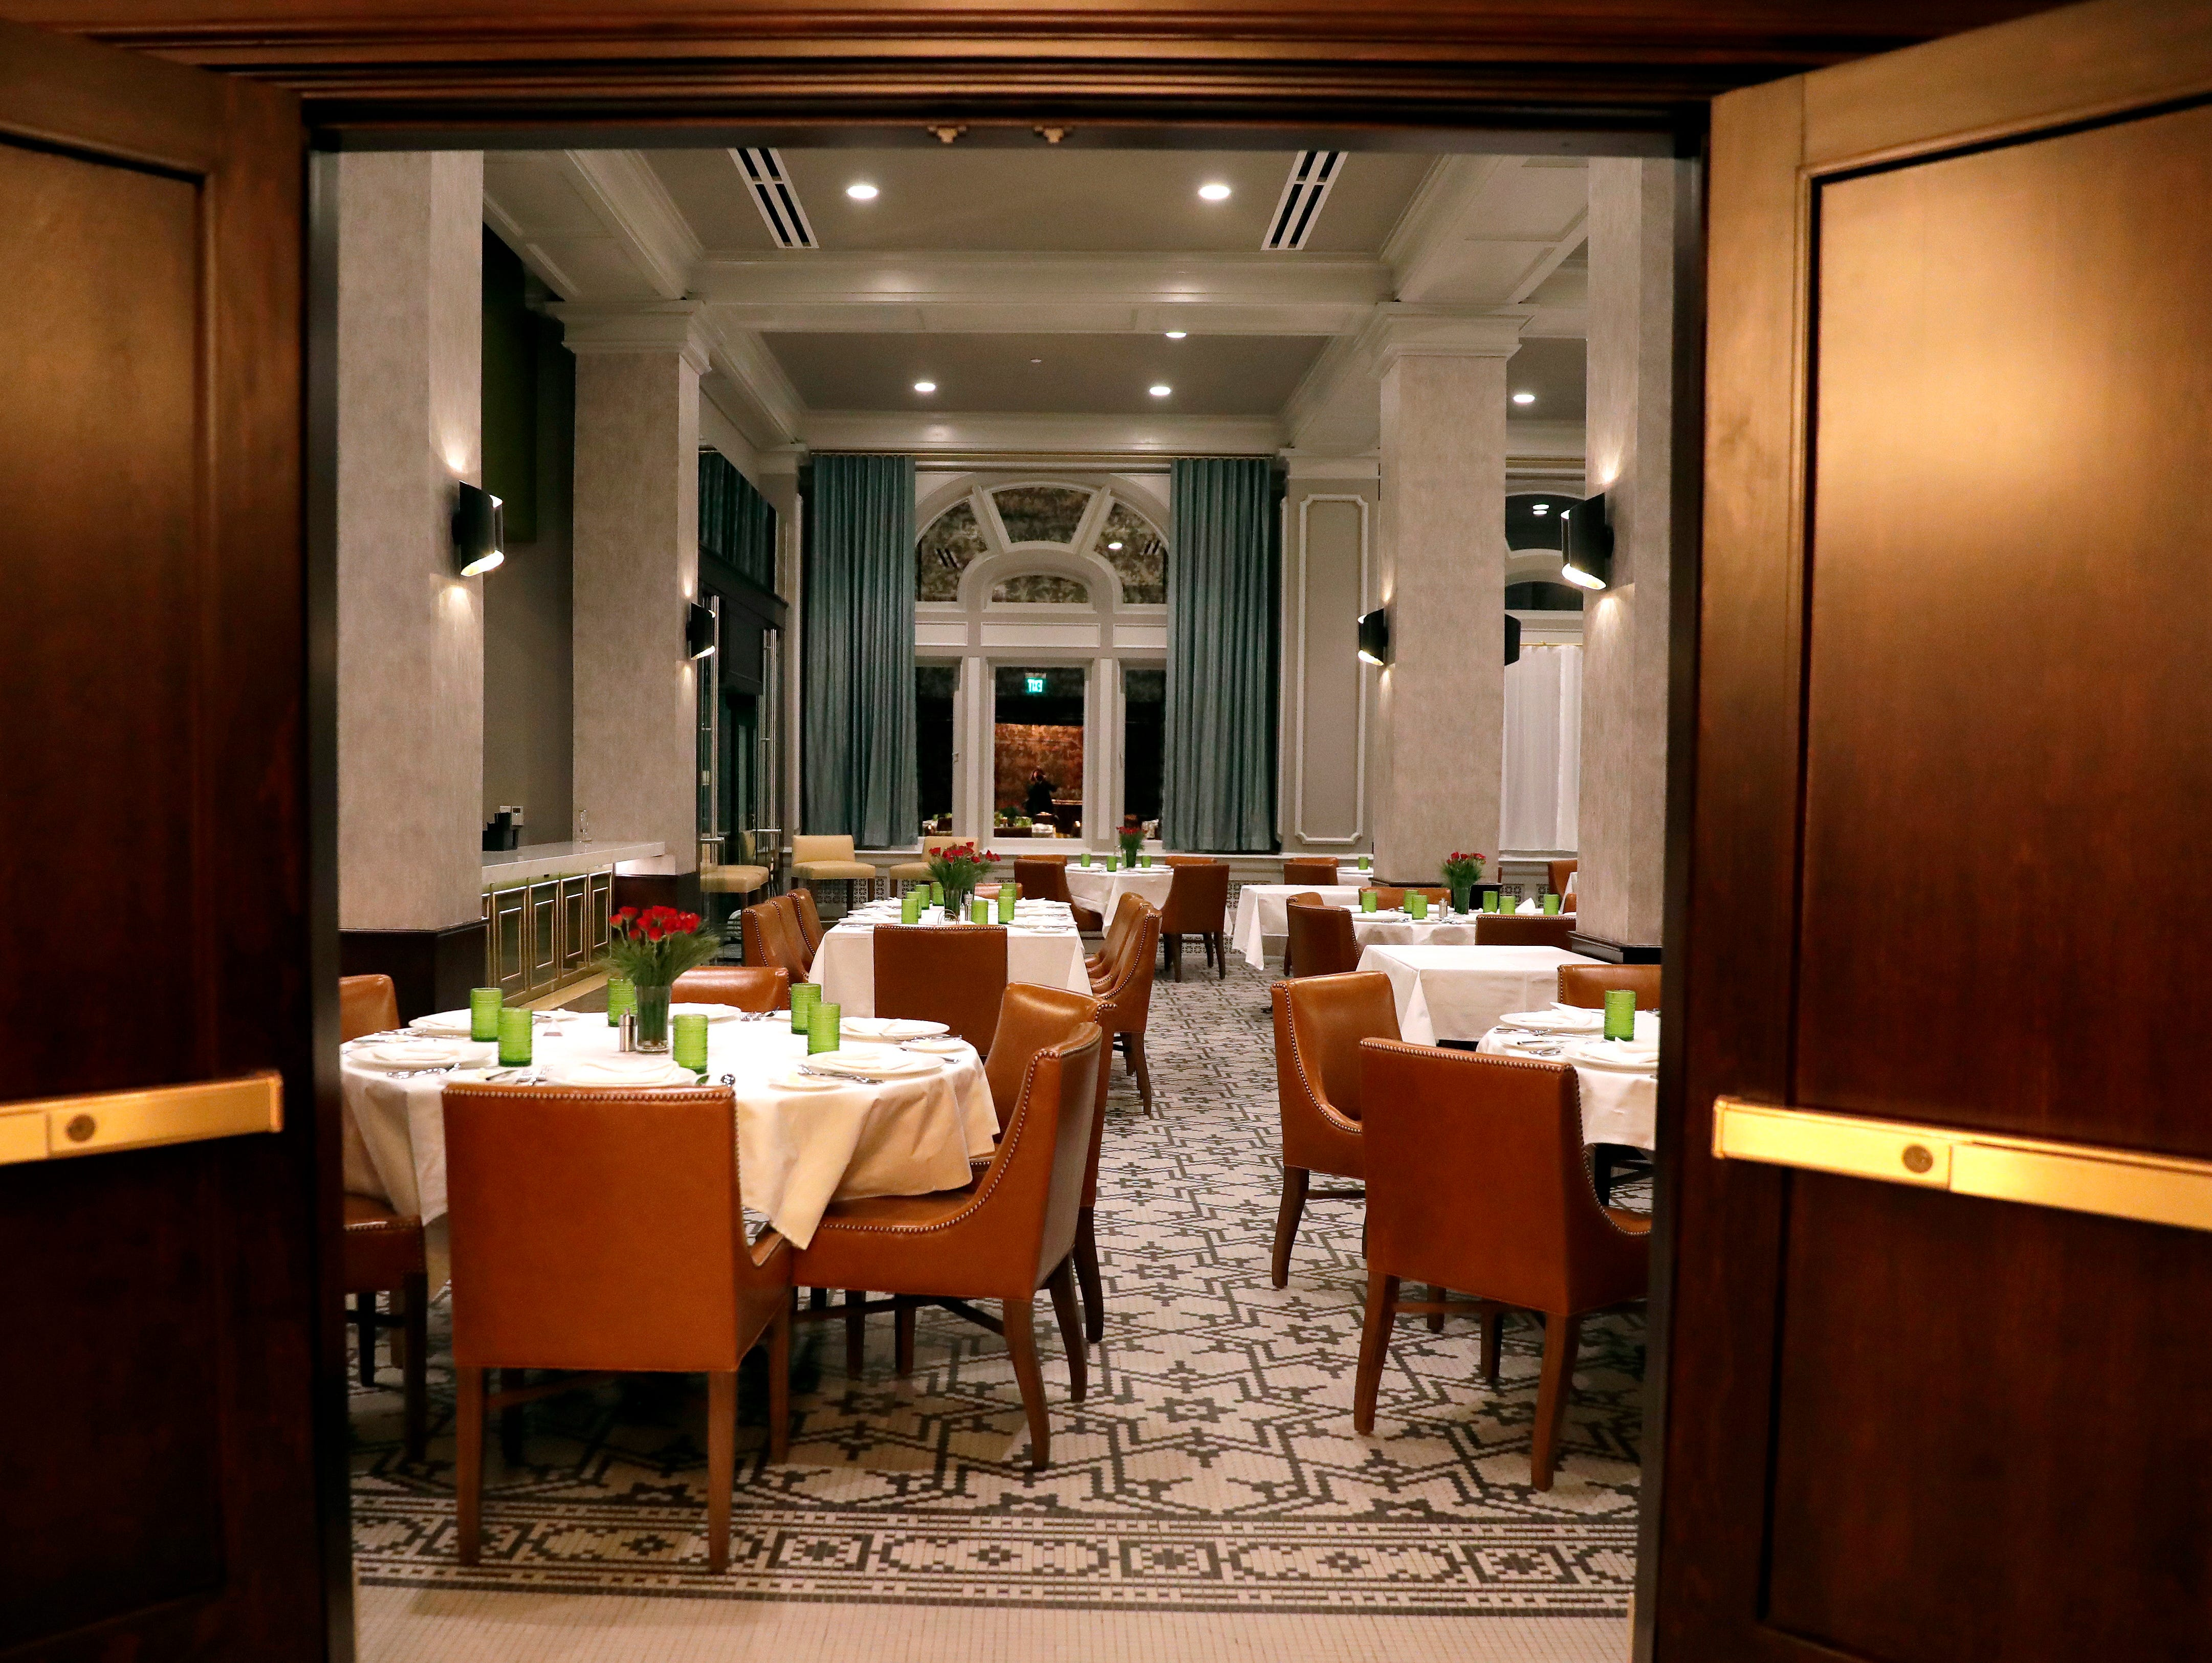 The Walnut Room restaurant at Hotel Northland in Green Bay, Wis.